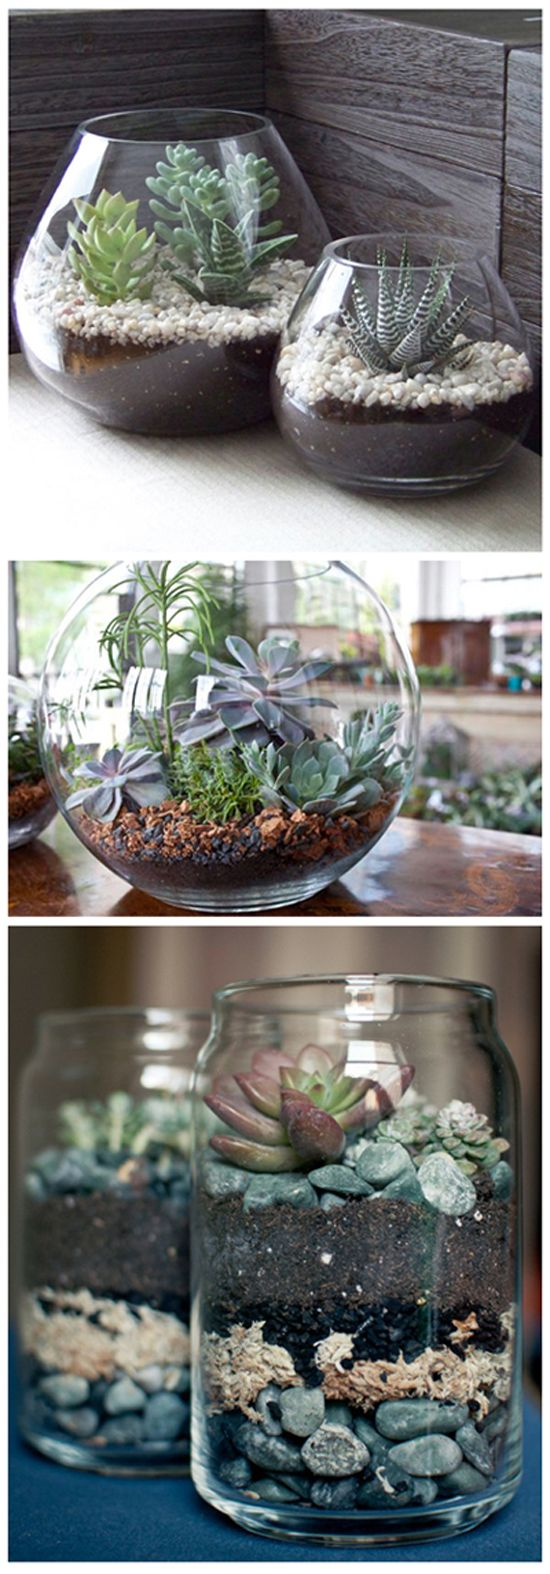 Gonna start a terrarium project once I move out!